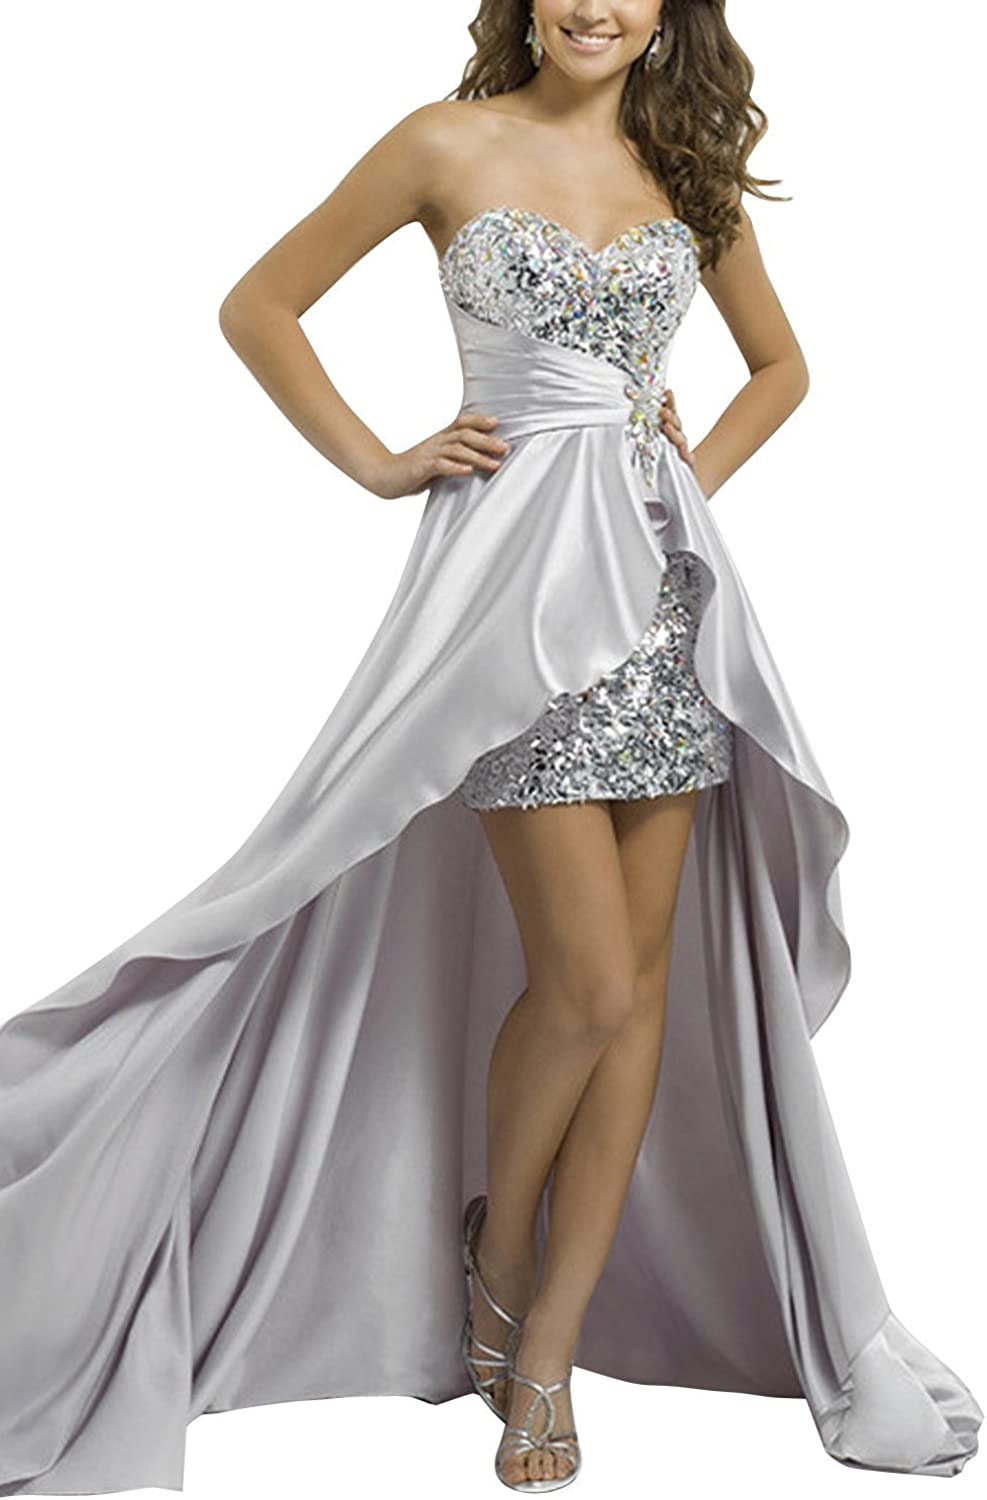 Ellenhouse Women's Sequined High Low Homecoming Prom Party Dresses EL064